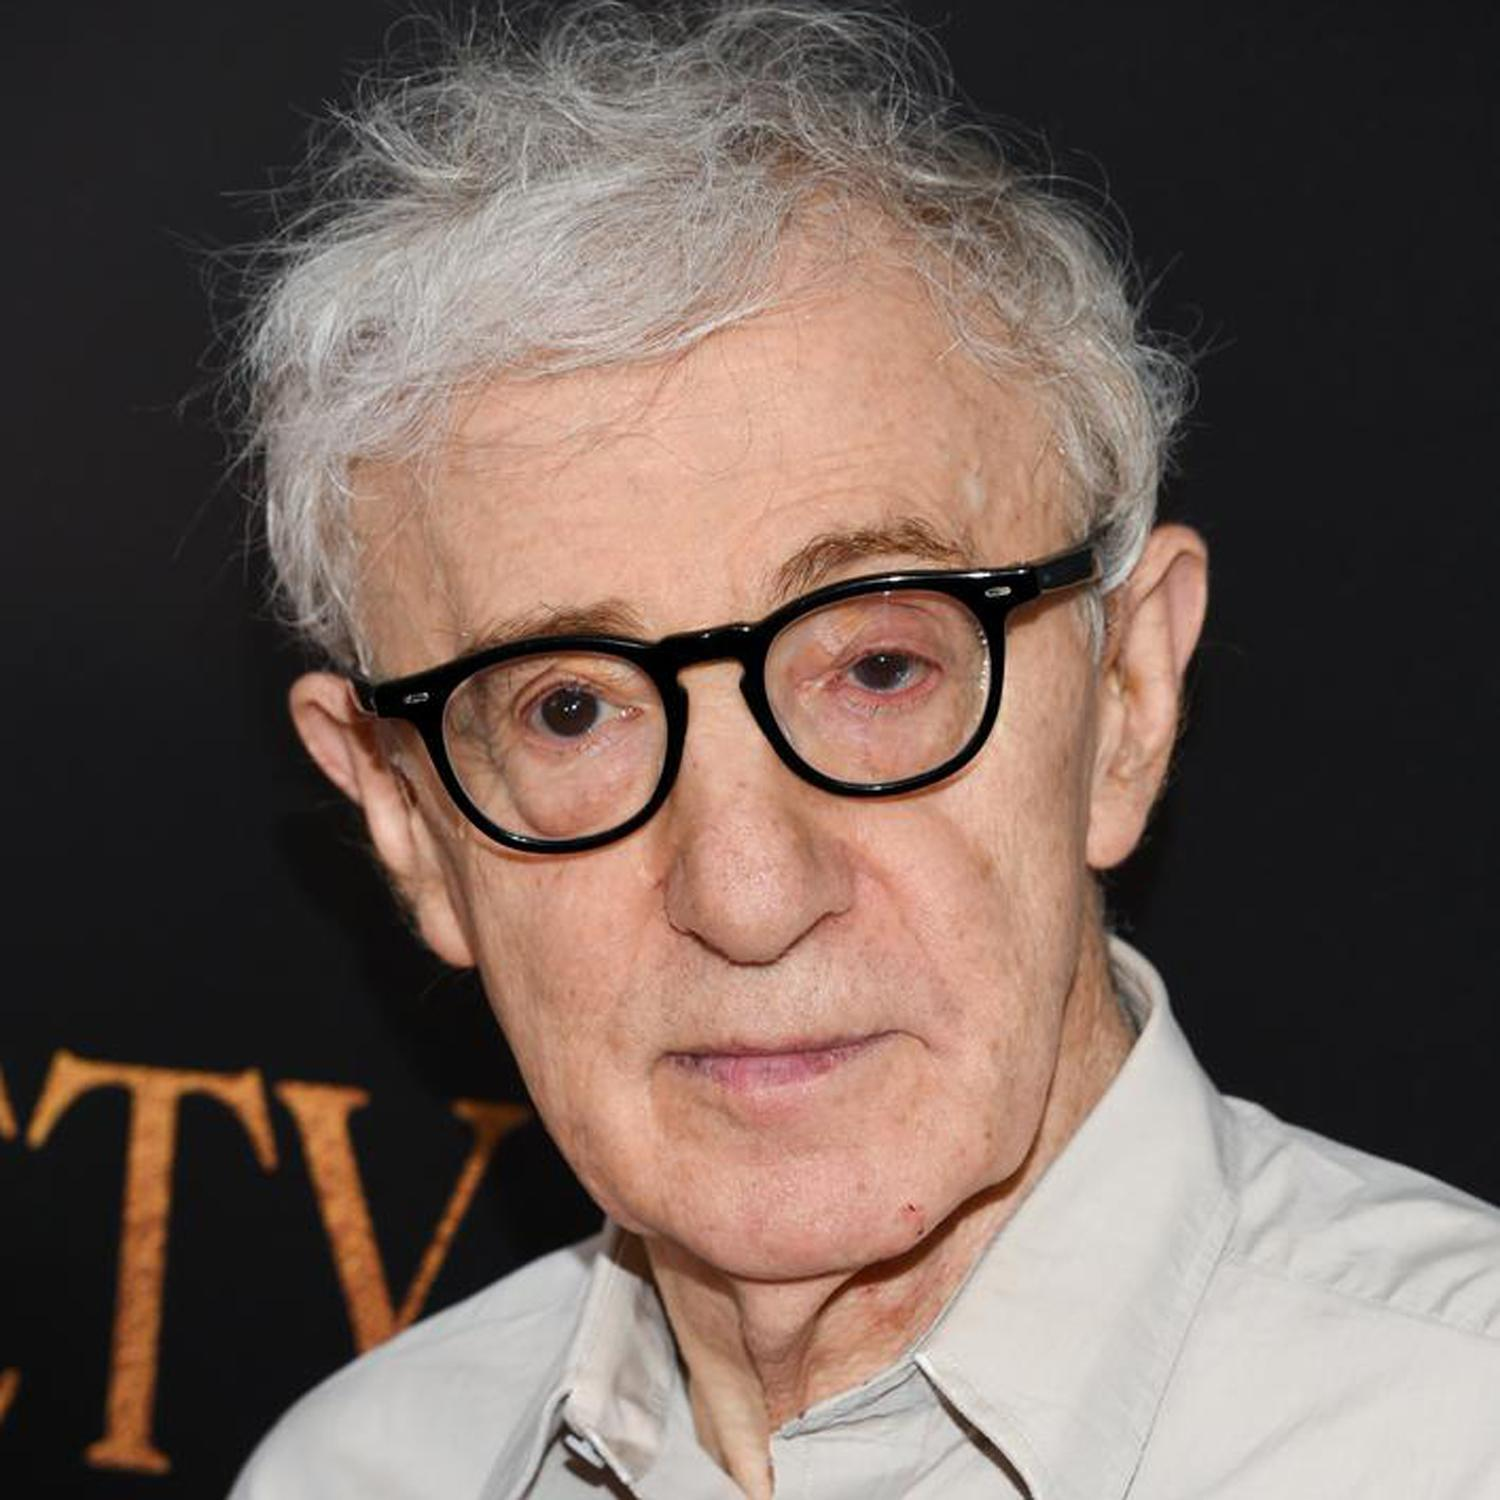 woody allen See tweets about #woodyallen on twitter see what people are saying and join the conversation.